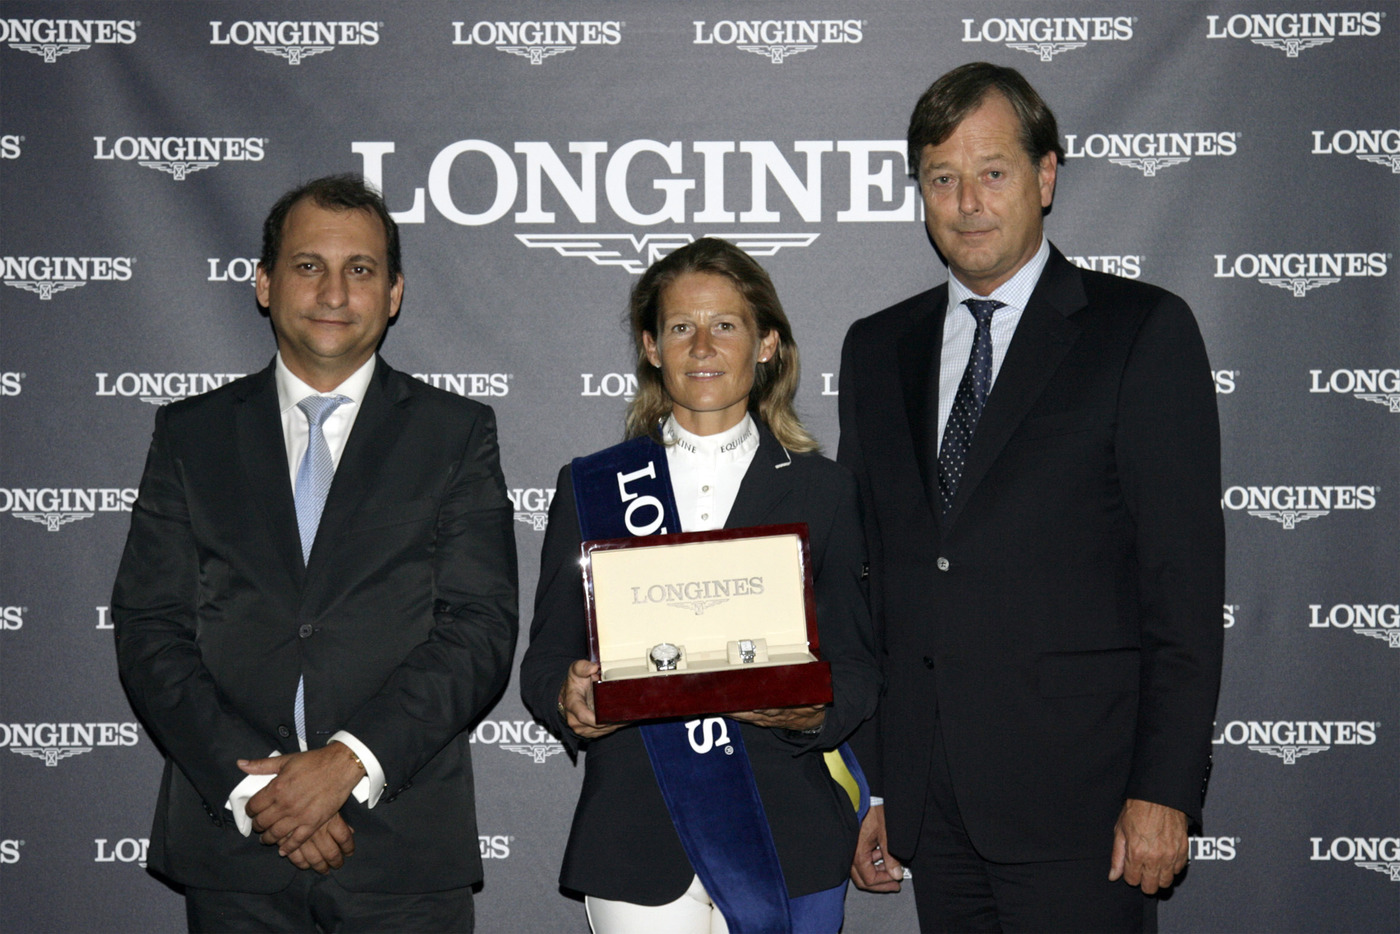 Longines Show Jumping Event: Eugenie Angot wins the Longines Queen's Cup of the CSIO Barcelona 2012 2